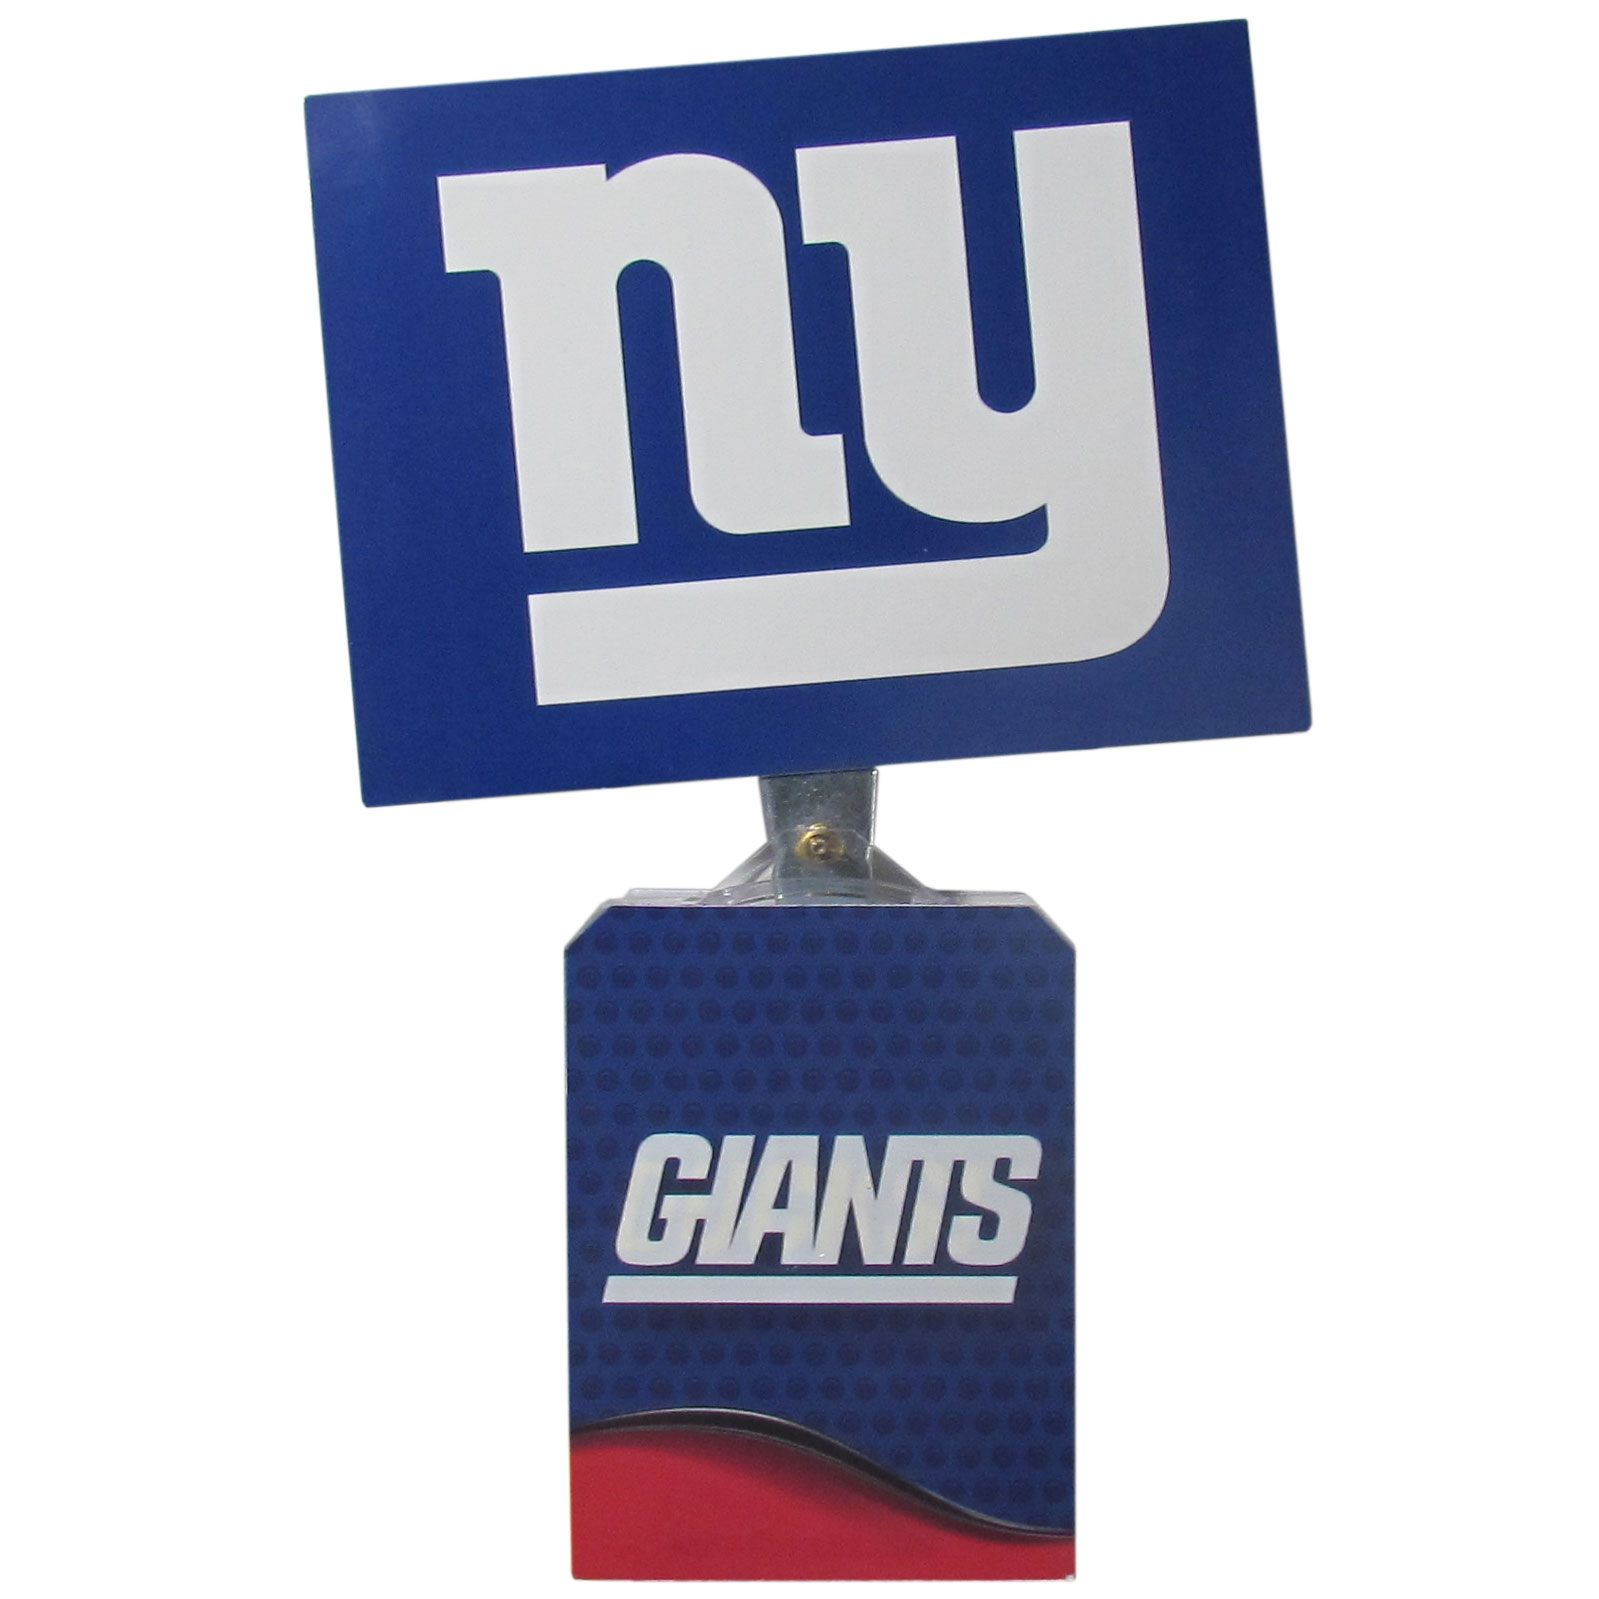 New York Giants Solar Flags - Get pumped up on the way to game with Siskiyou's Chicago Bears New York Giants Solar Flag that mounts to your dashboard or window. The in-motion solar flag also doubles as decoration for your tailgate or homegate! The base of the flag is 3 inches tall and the flag is 4 inches making the entire in-motion solar flag stand at 7 inches tall. Keep your spirit moving with your favorite team's Solar Flag.